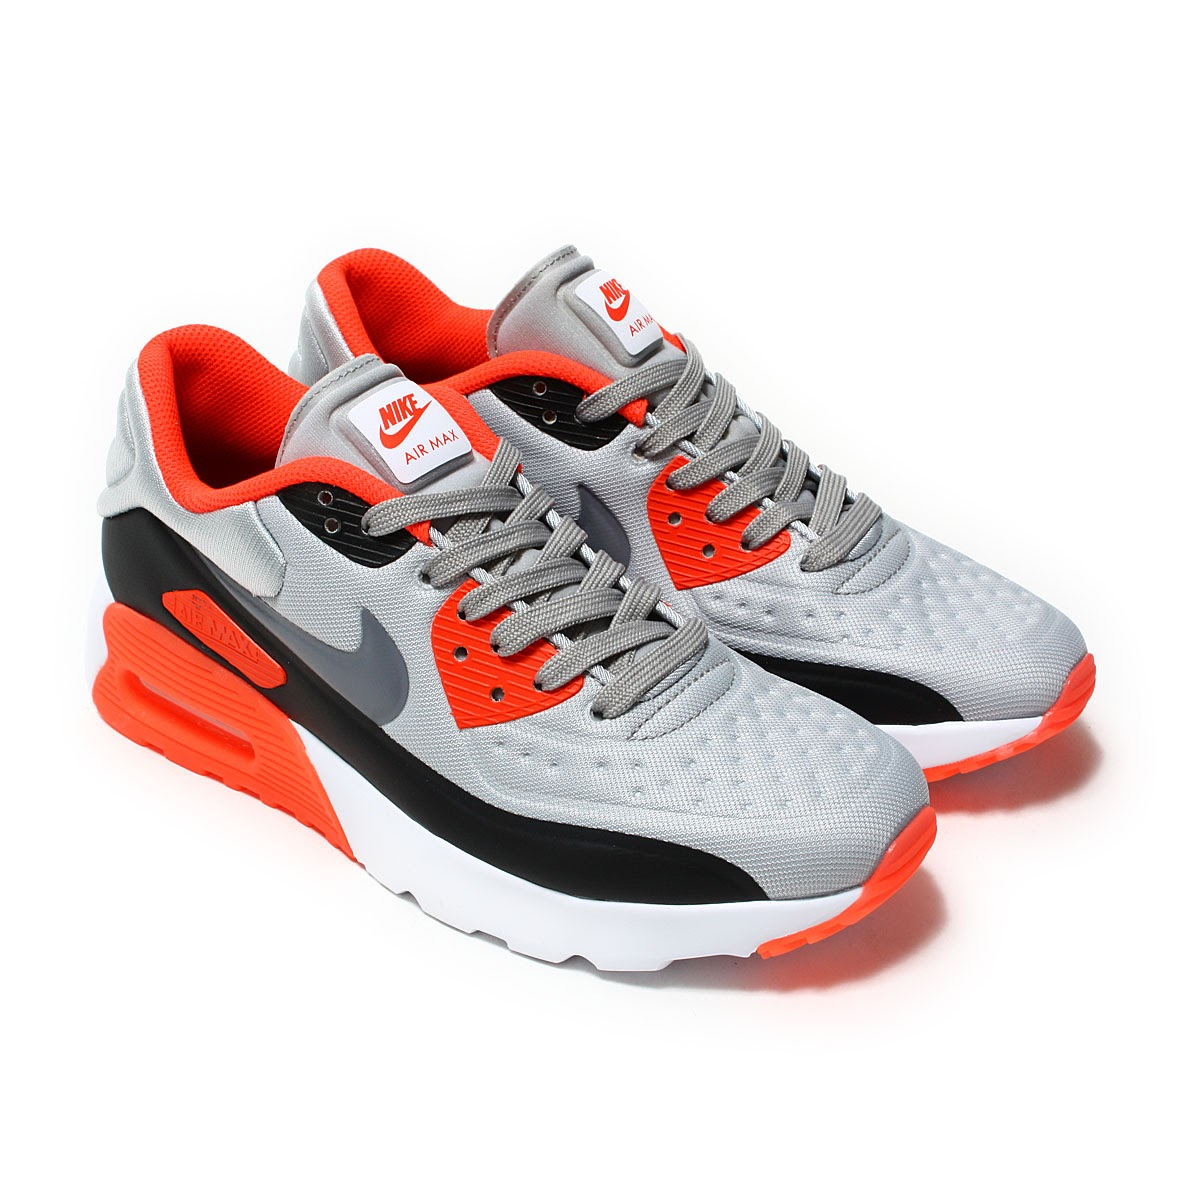 exclusive range uk cheap sale differently NIKE AIR MAX 90 ULTRA SE GS (나이키 에어 막스 90 울트라 SE GS) WHITE/GREY/INFRARED 18  SP-I